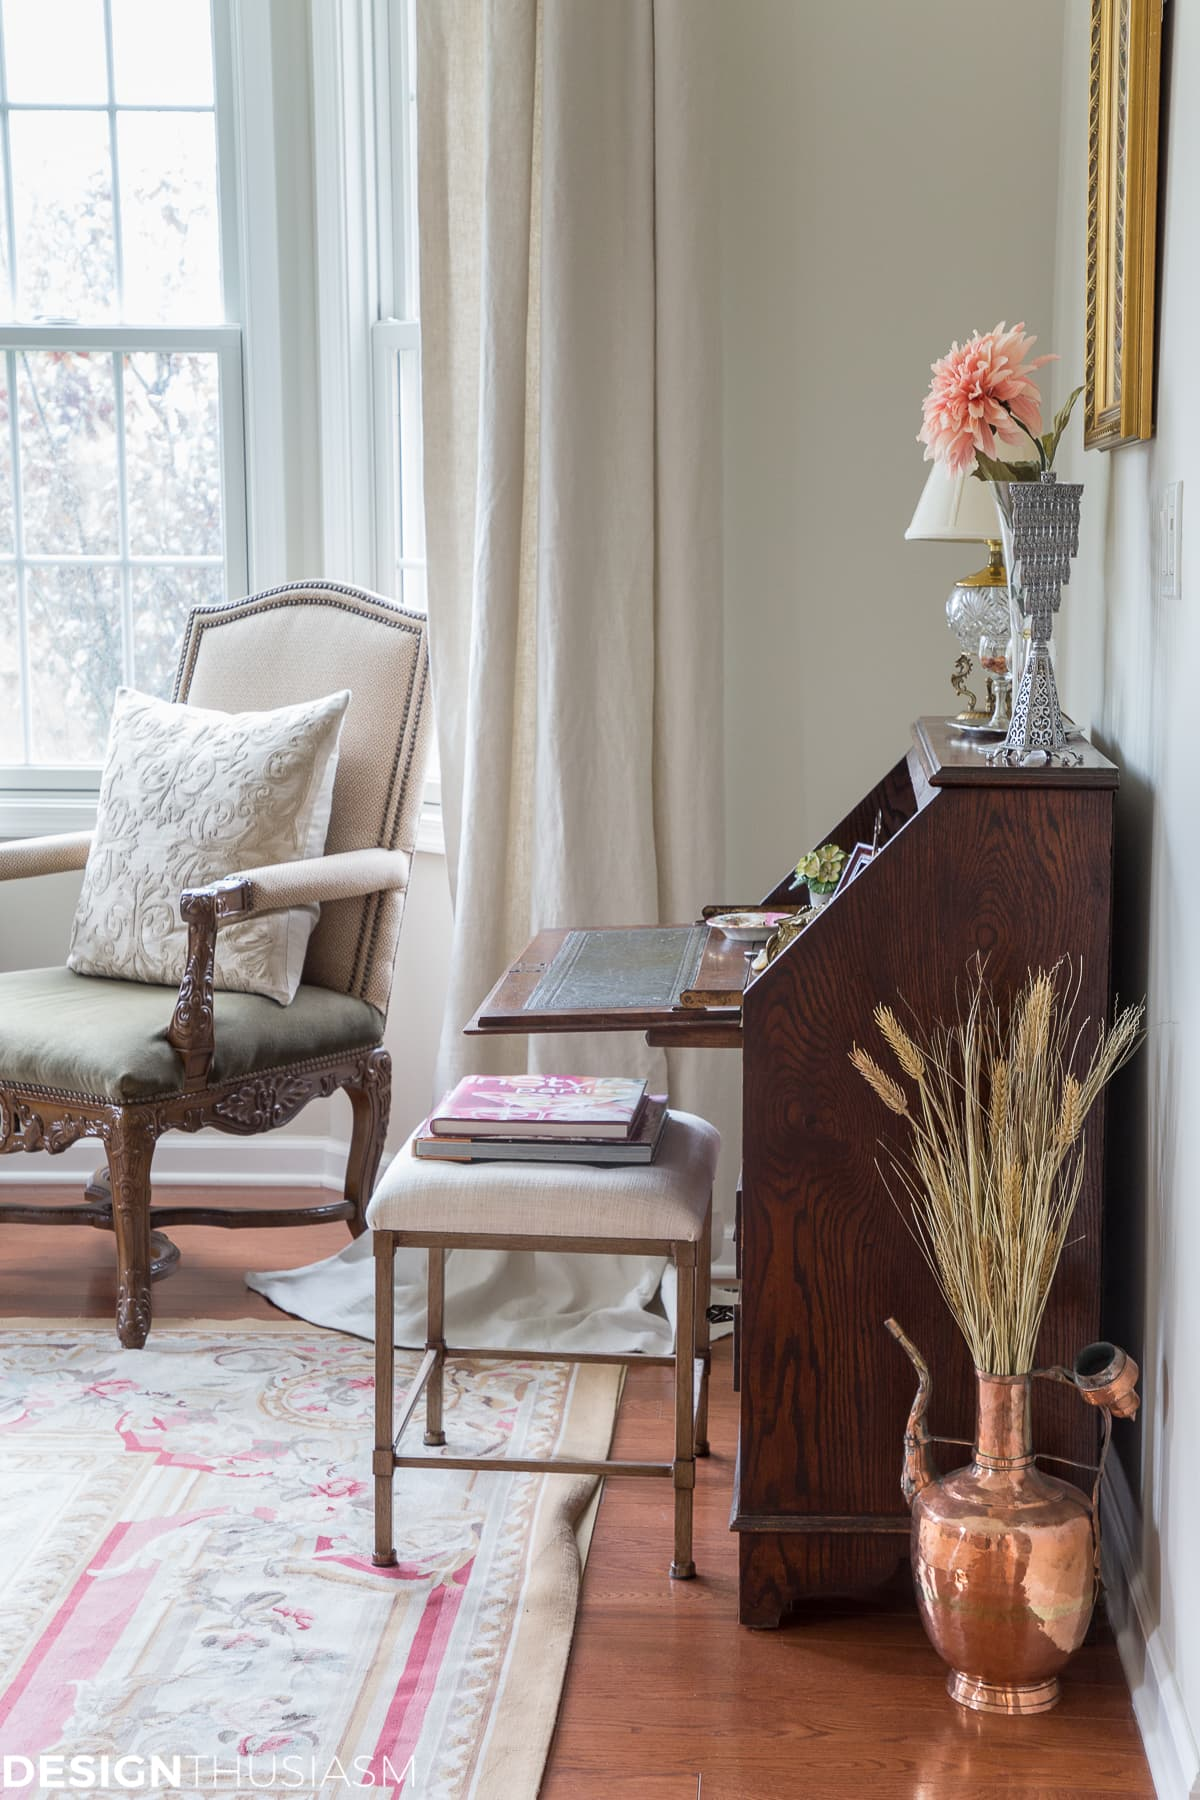 How I Modernized My French Style Living Room with 4 Simple Updates